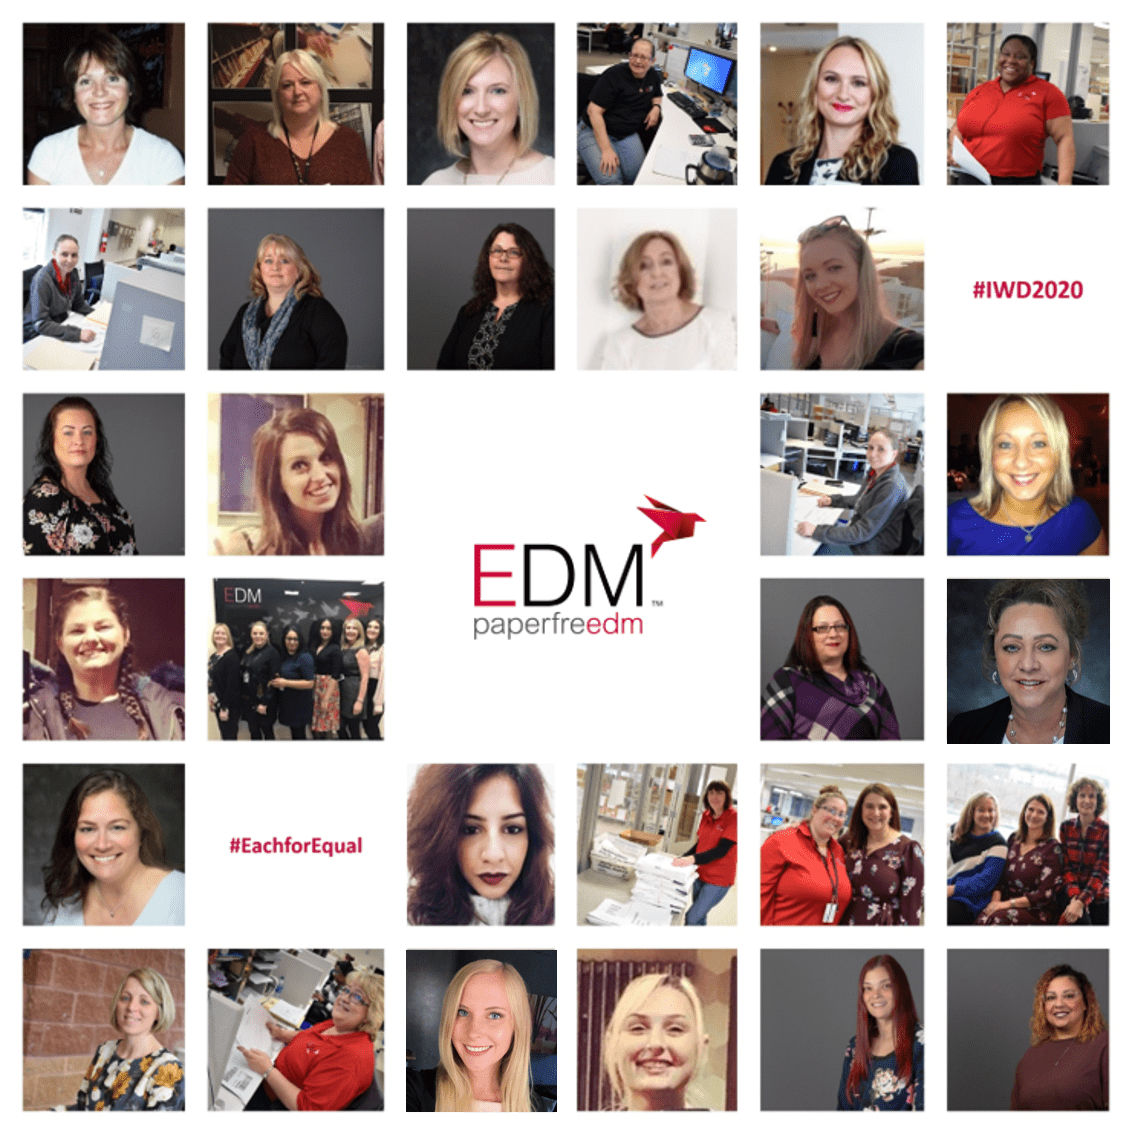 EDM celebrates International Women's Day 2020 #IWD2020